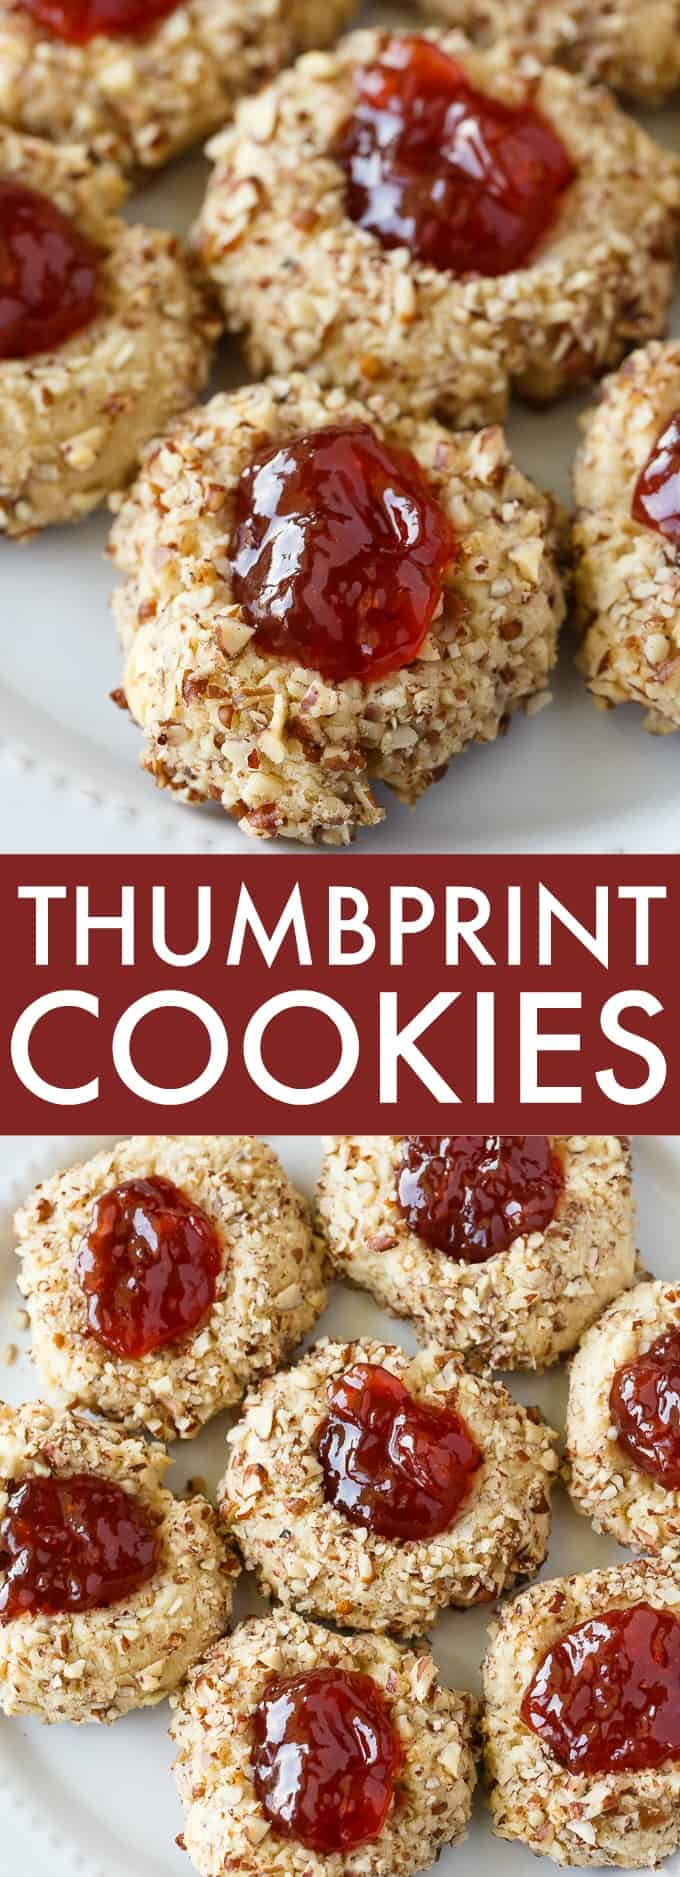 Thumbprint Cookies - A classic jam-filled cookie that practically melts in your mouth!